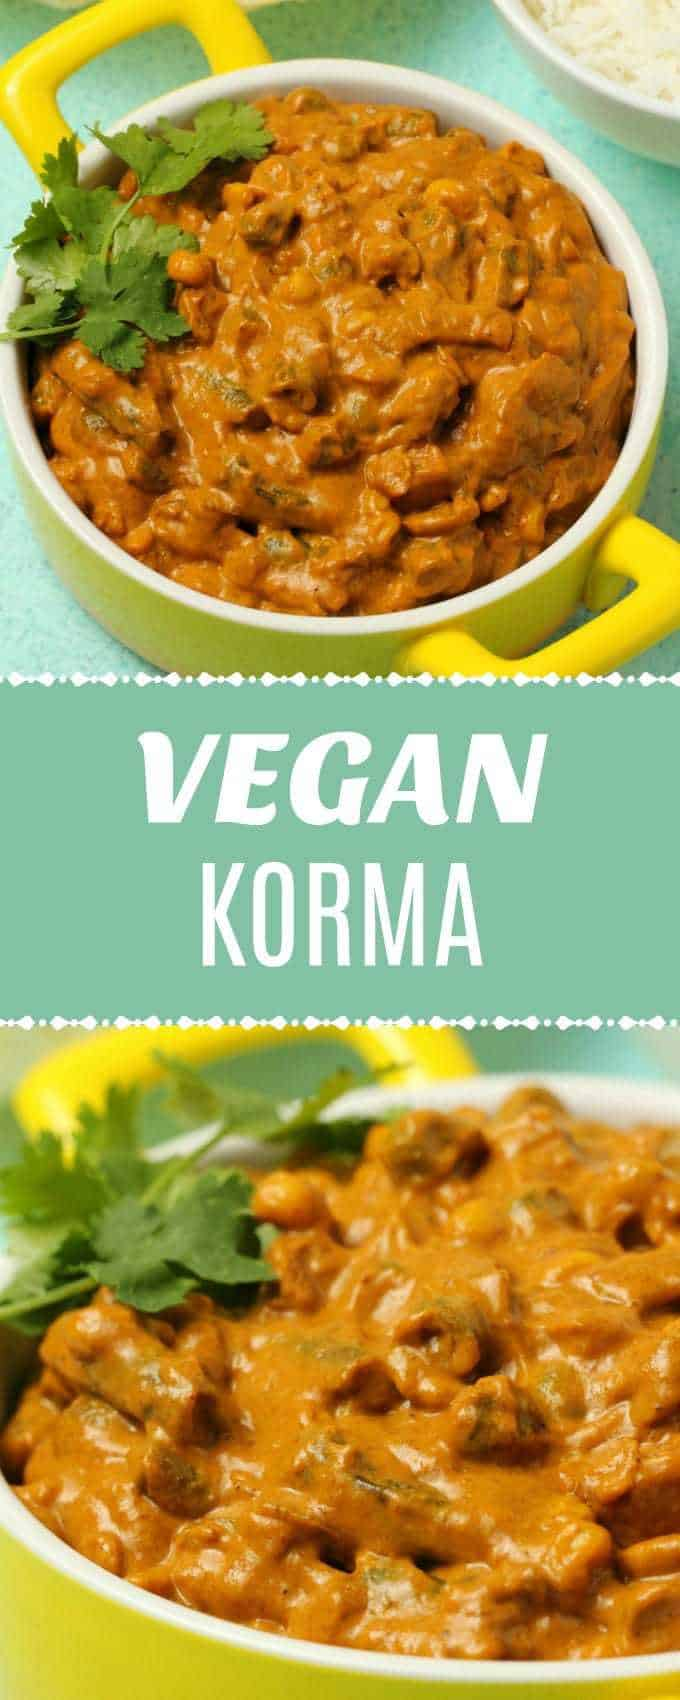 Super easy vegan korma ready in 30 minutes! A delicious blend of vegetables and spices in a creamy and rich korma sauce. Gluten-Free. | lovingitvegan.com